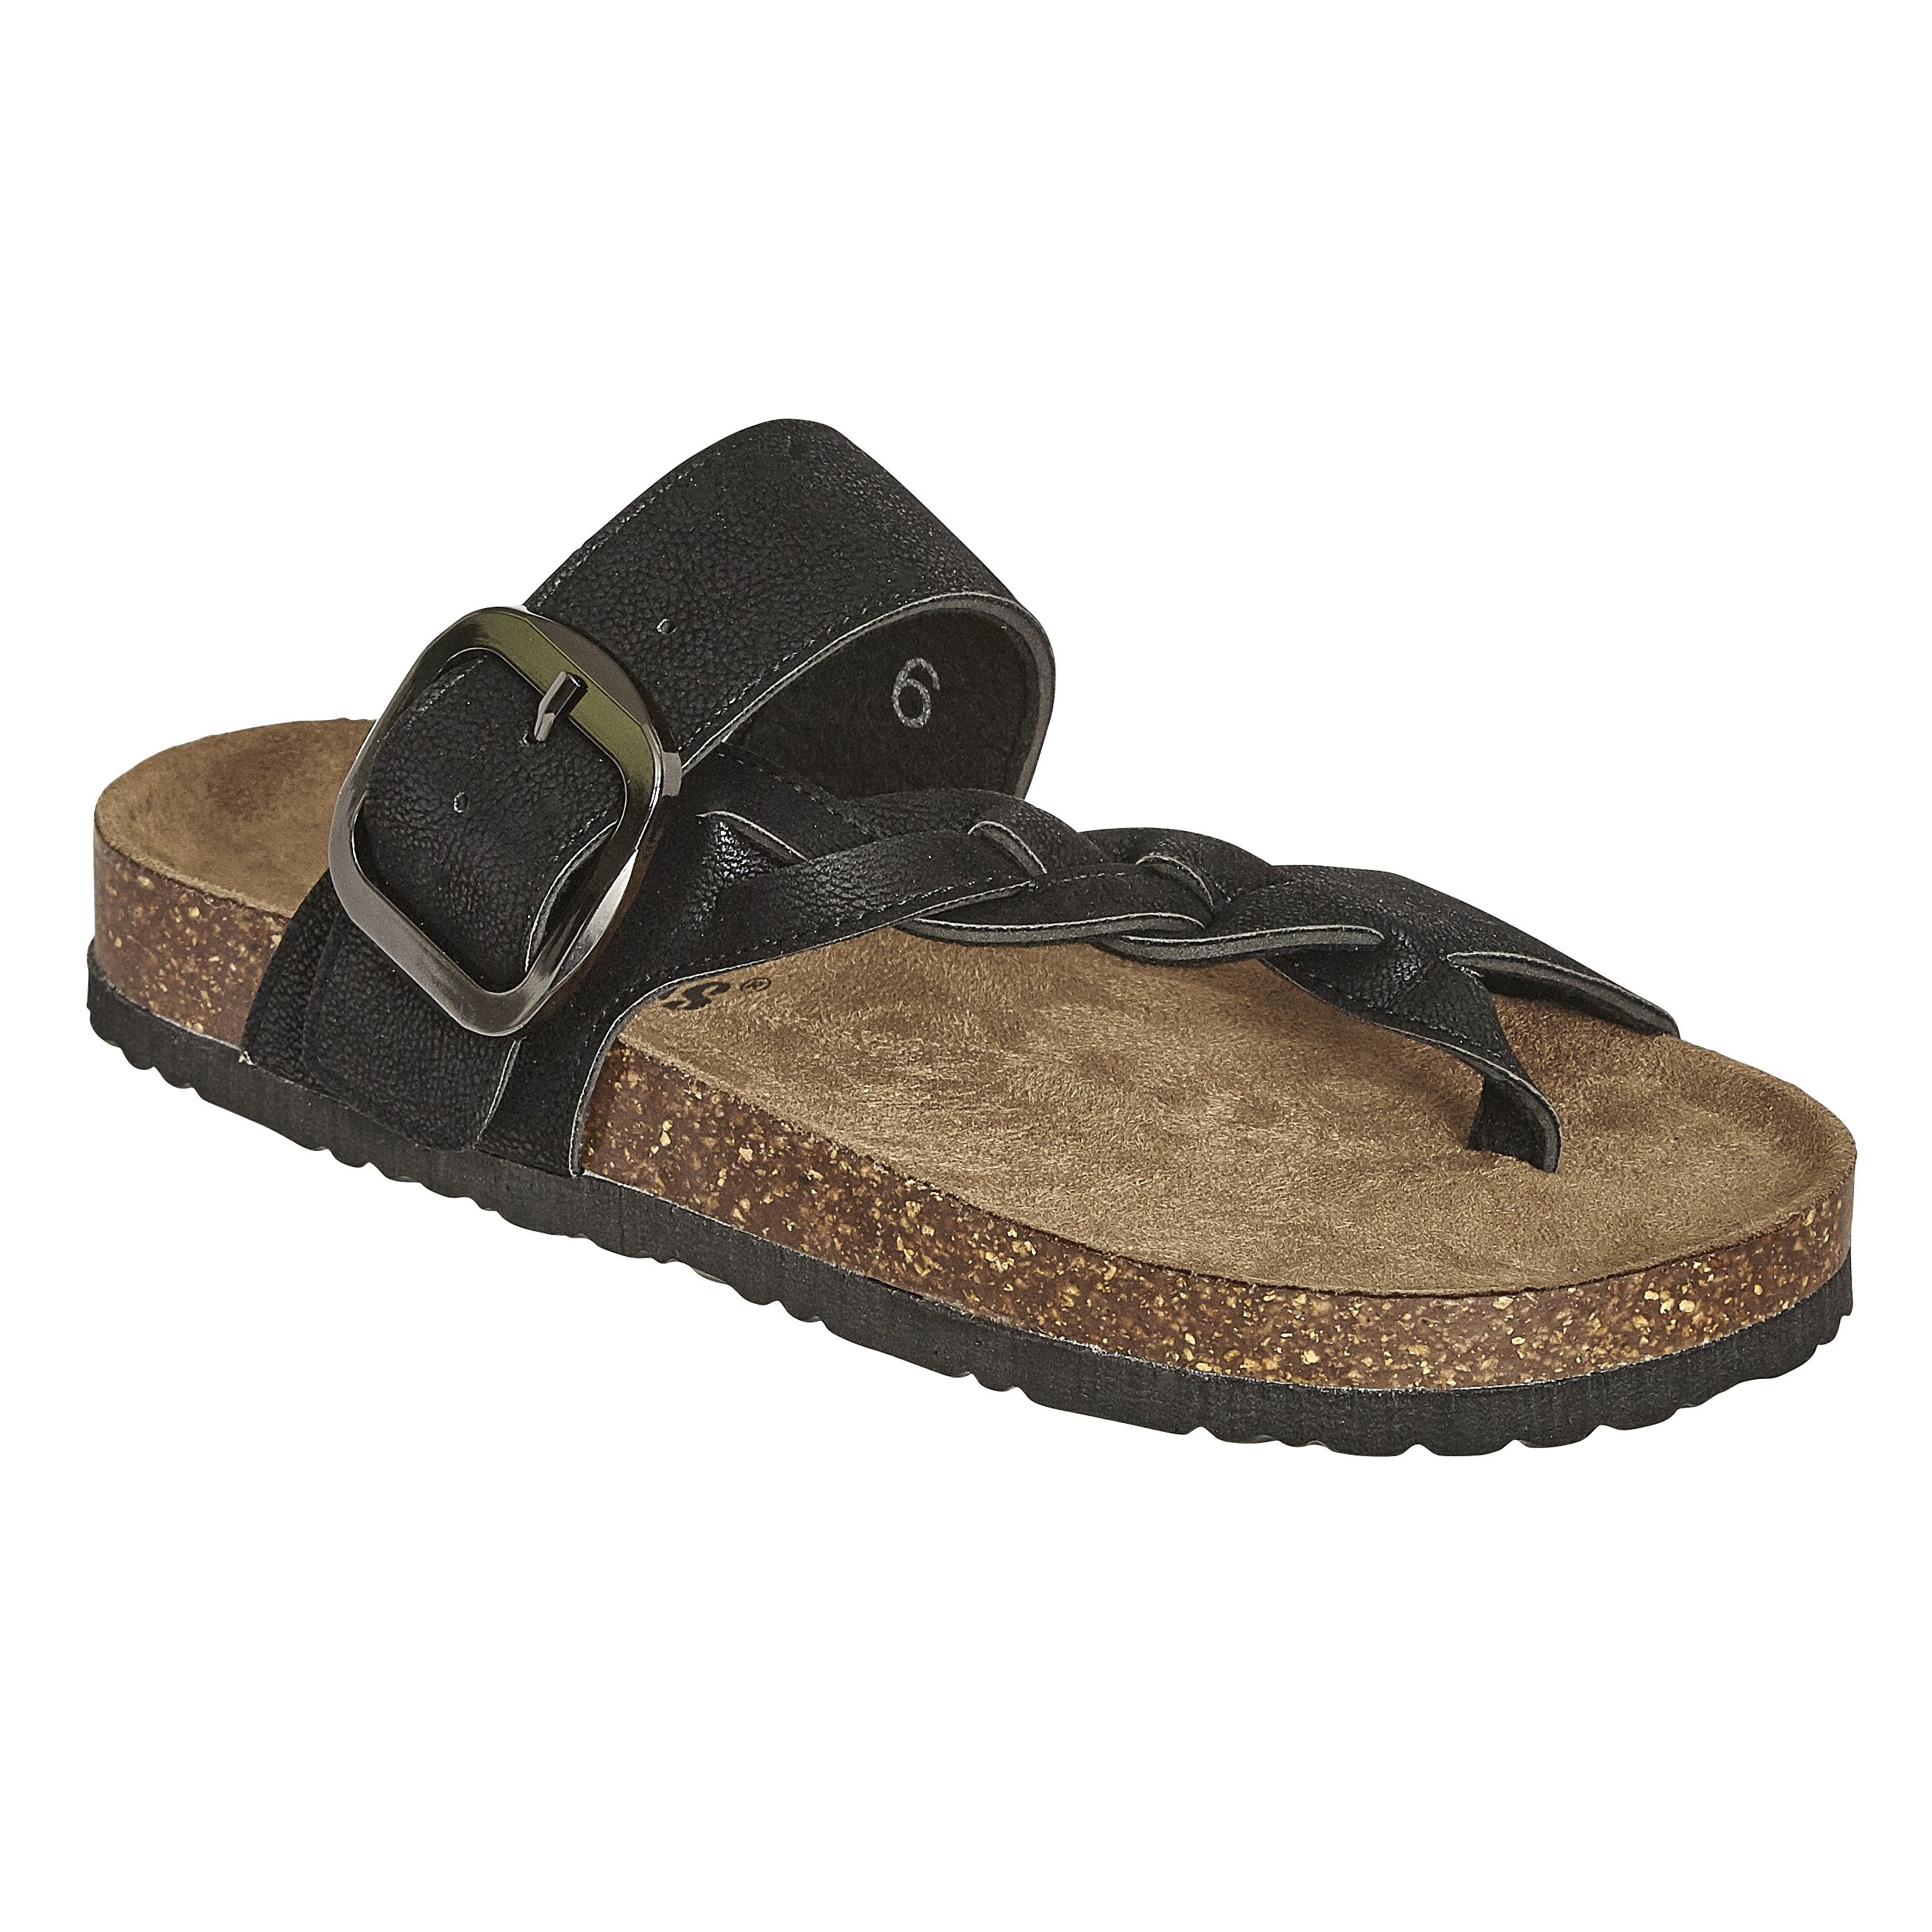 684c89680b20 21384 - BORK-67. Sandals by Outwoods